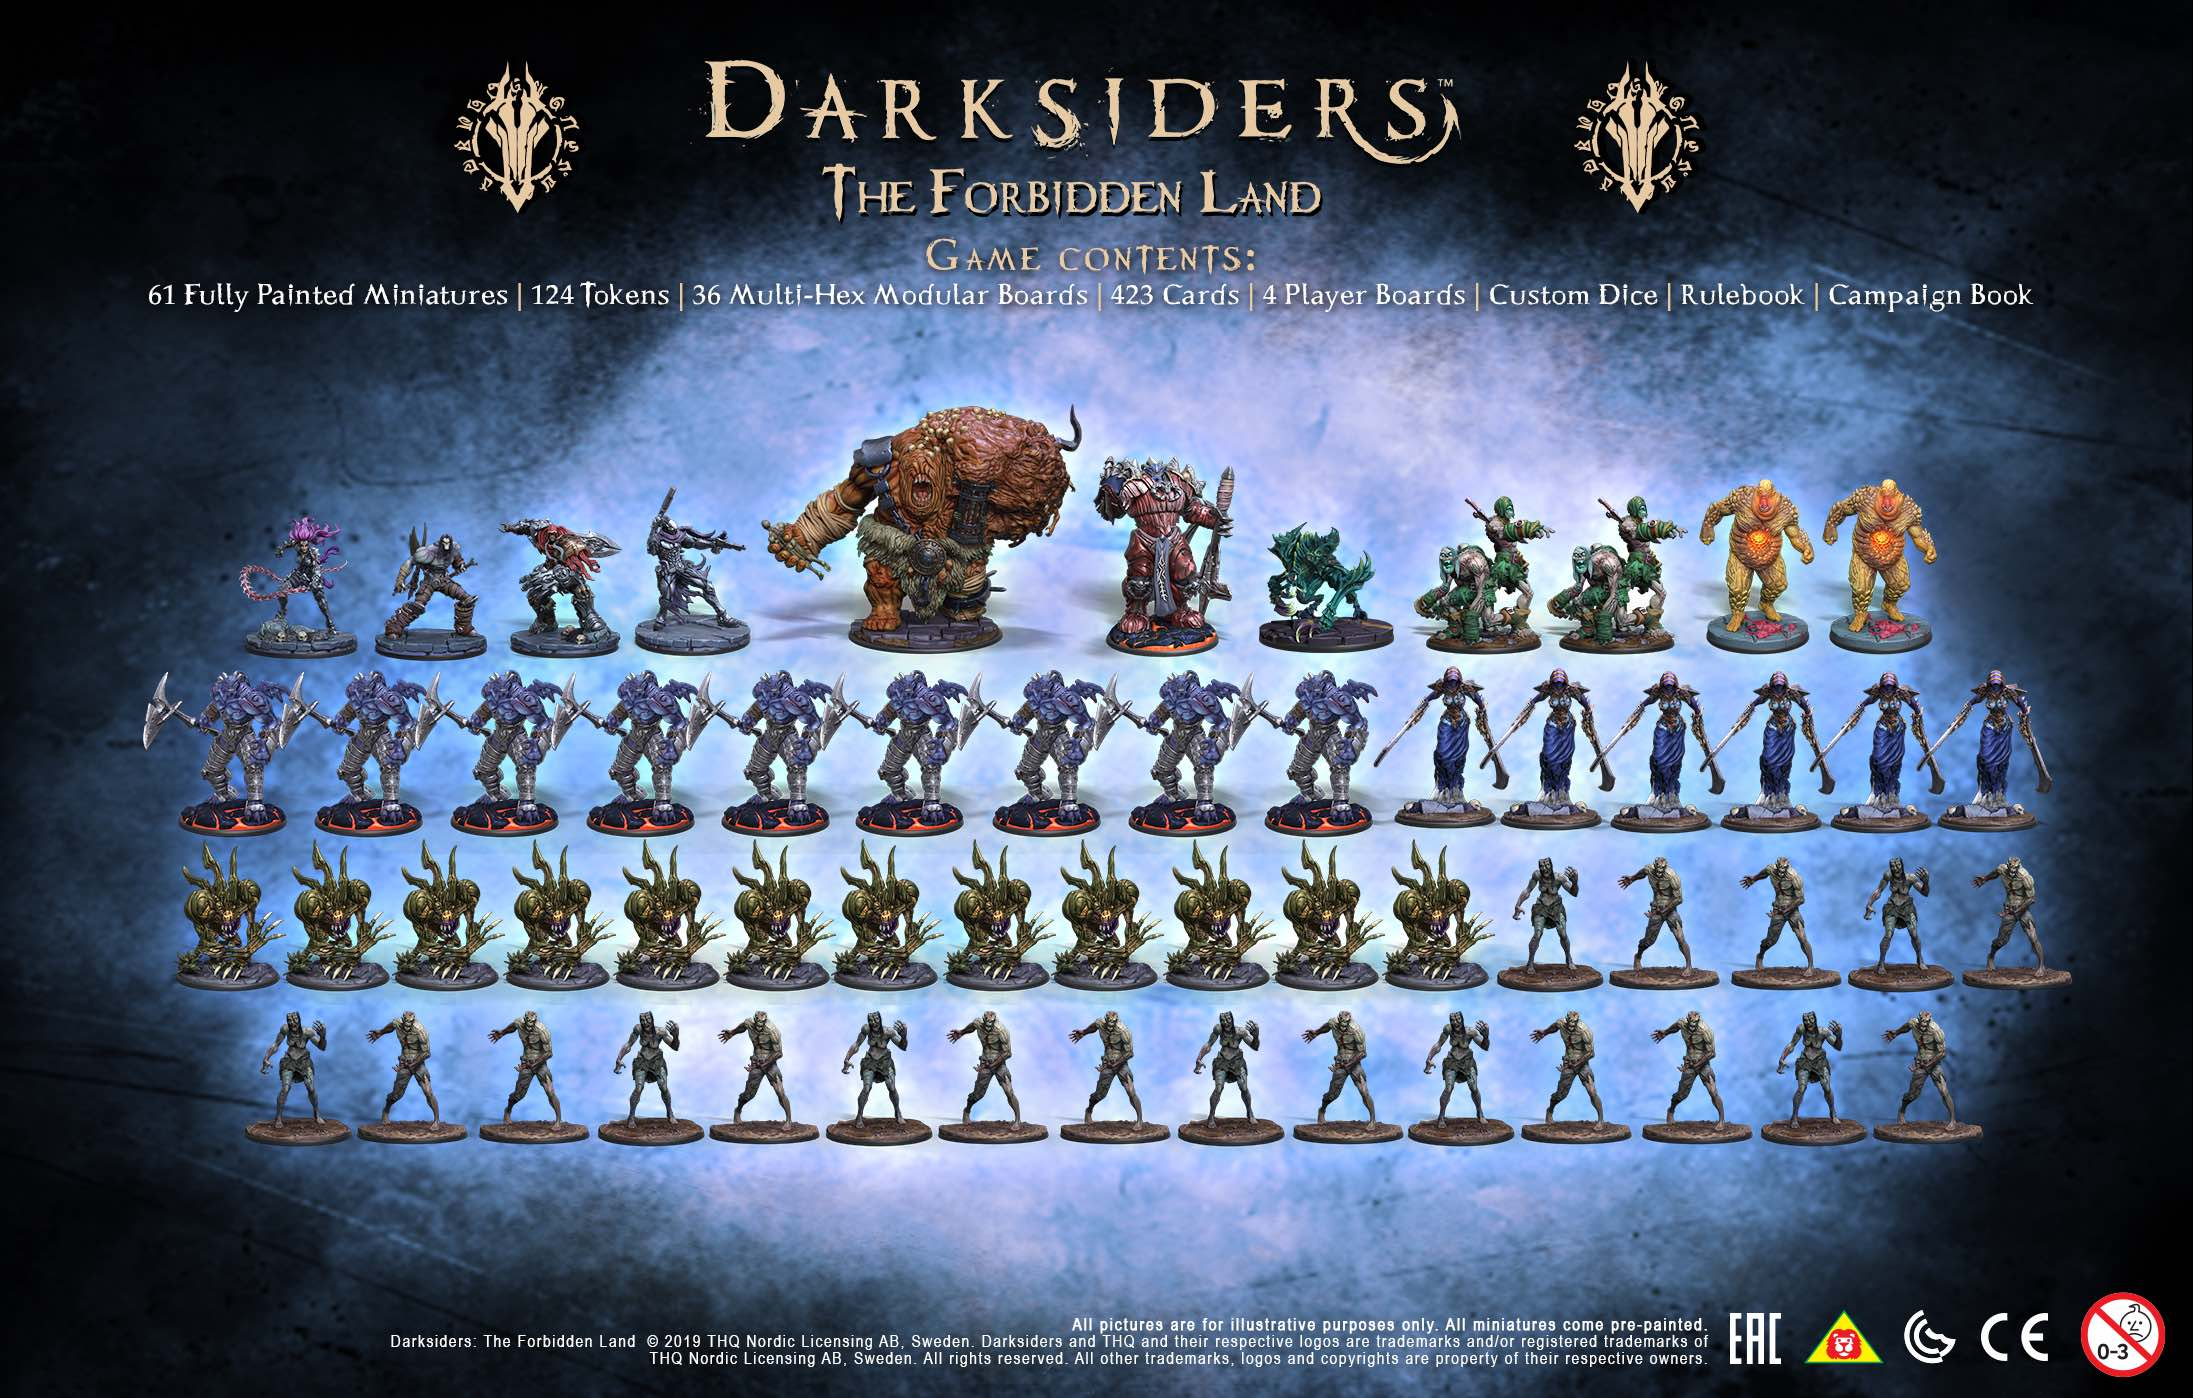 Darksiders: The Forbidden Land Contents Photo